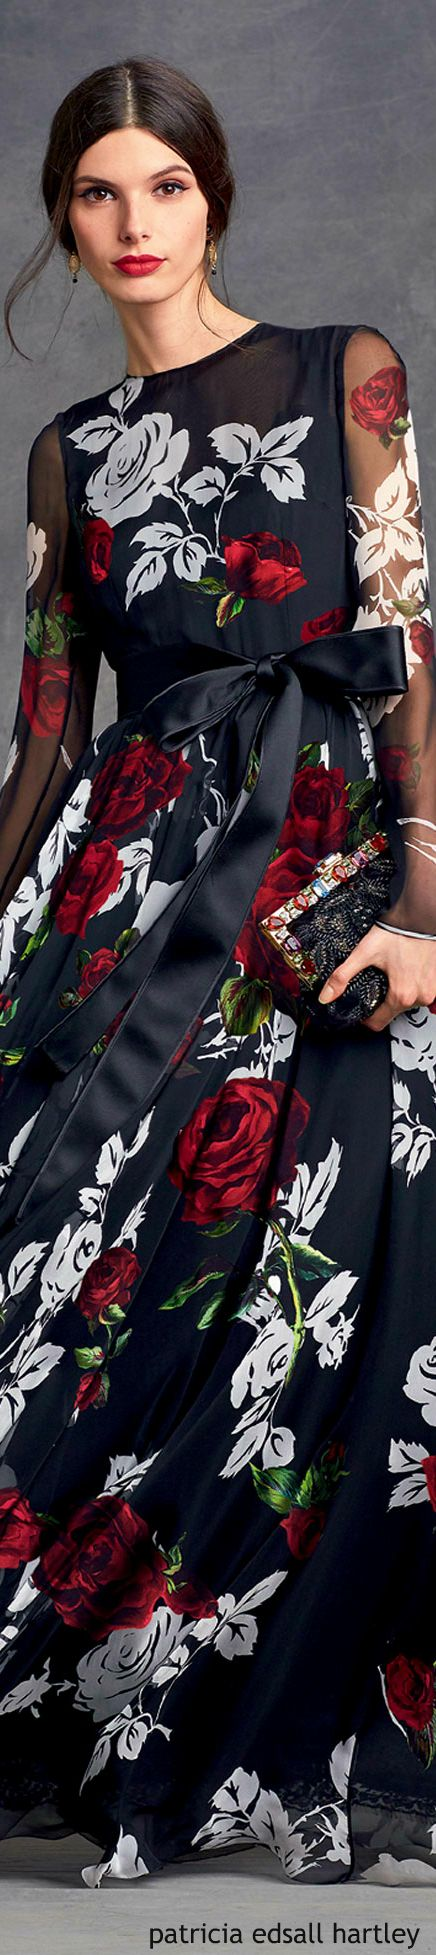 OUTFIT INSPIRATION: Black Dress with Red and White Rose Pattern Black Sparkly Clutch! (Dolce Gabbana - Winter 2016) Luxury Beauty - http://amzn.to/2jx73RT